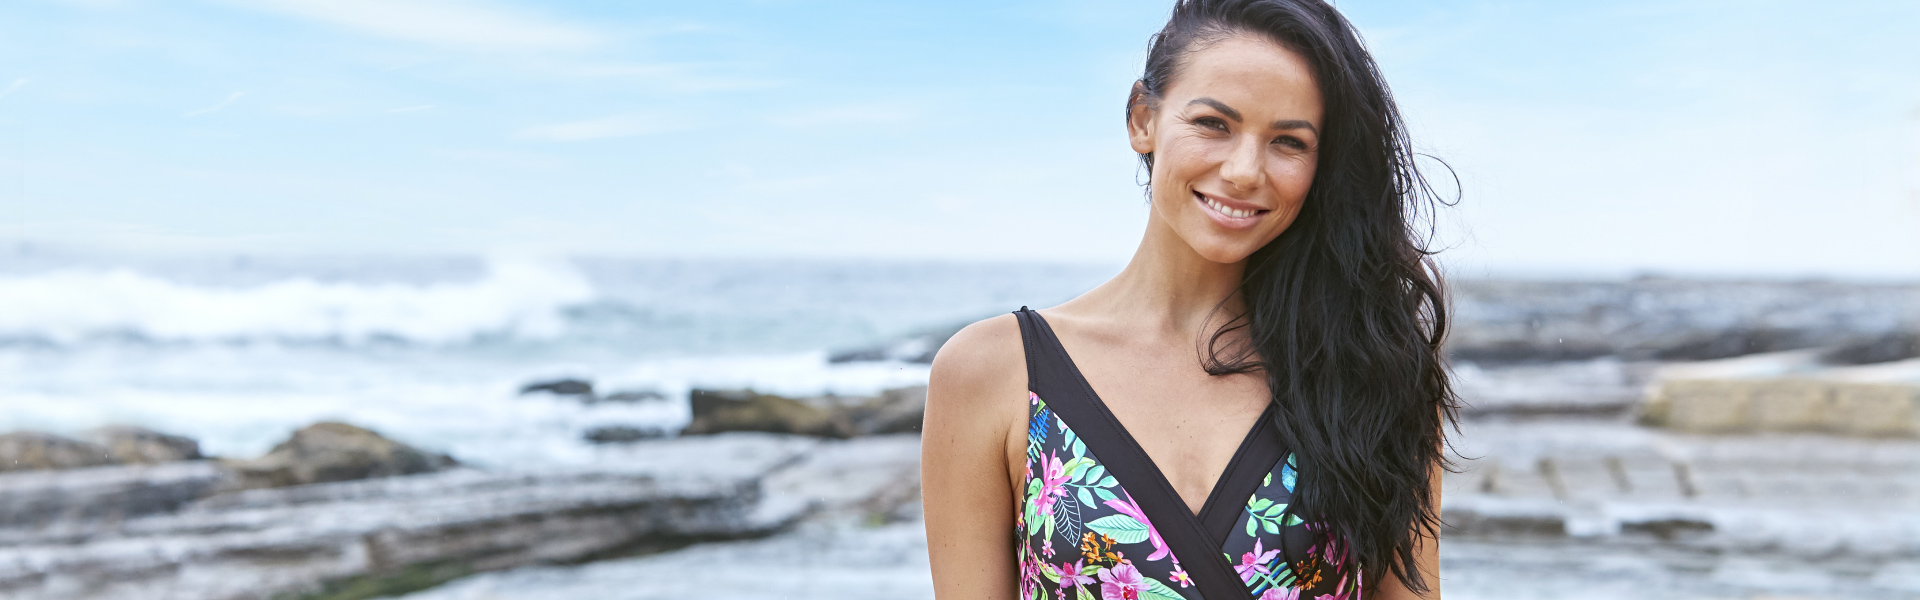 Our top ten picks for women this summer